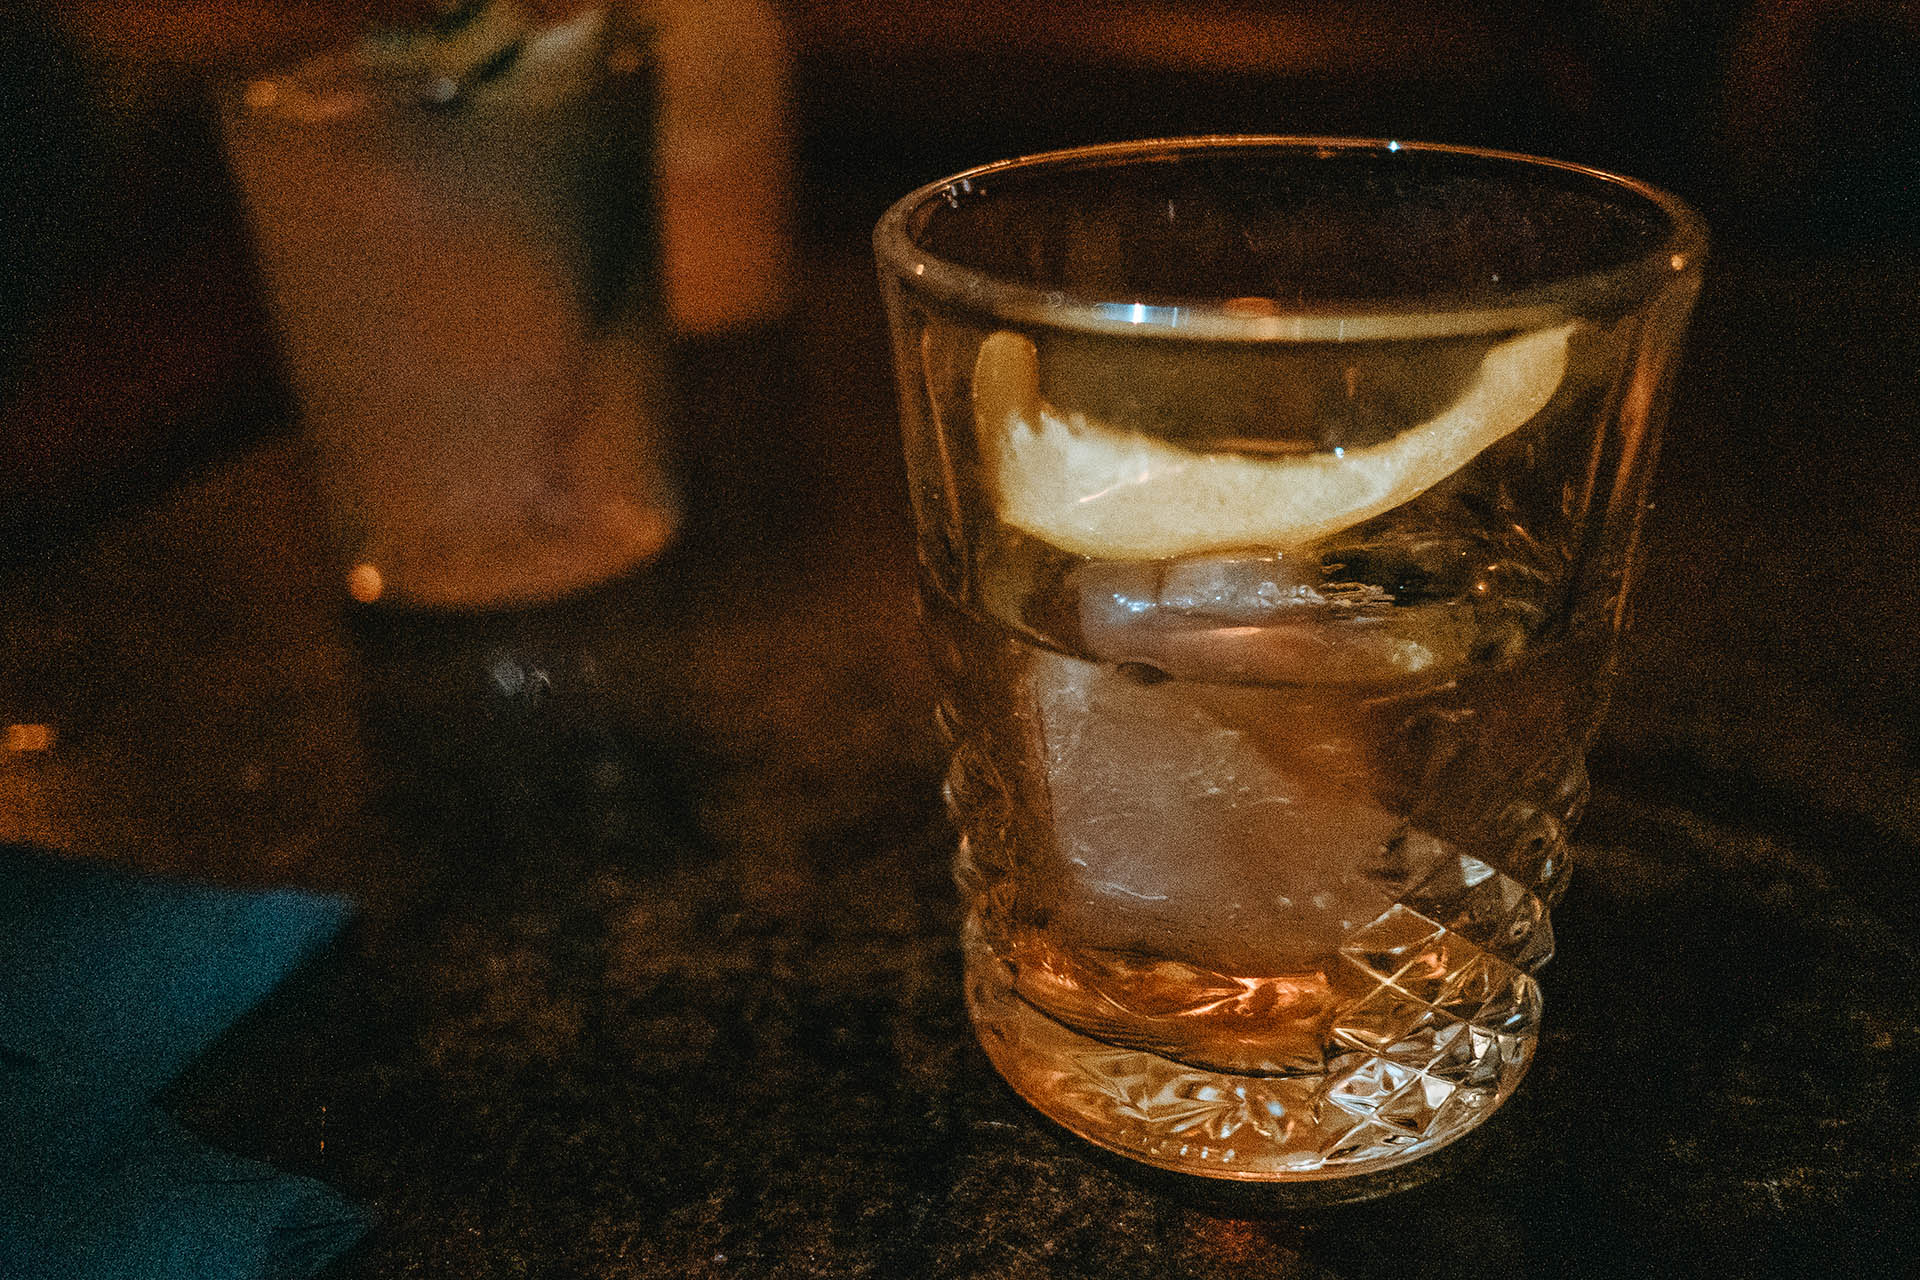 The mezcal old fashioned was disappointingly sweet